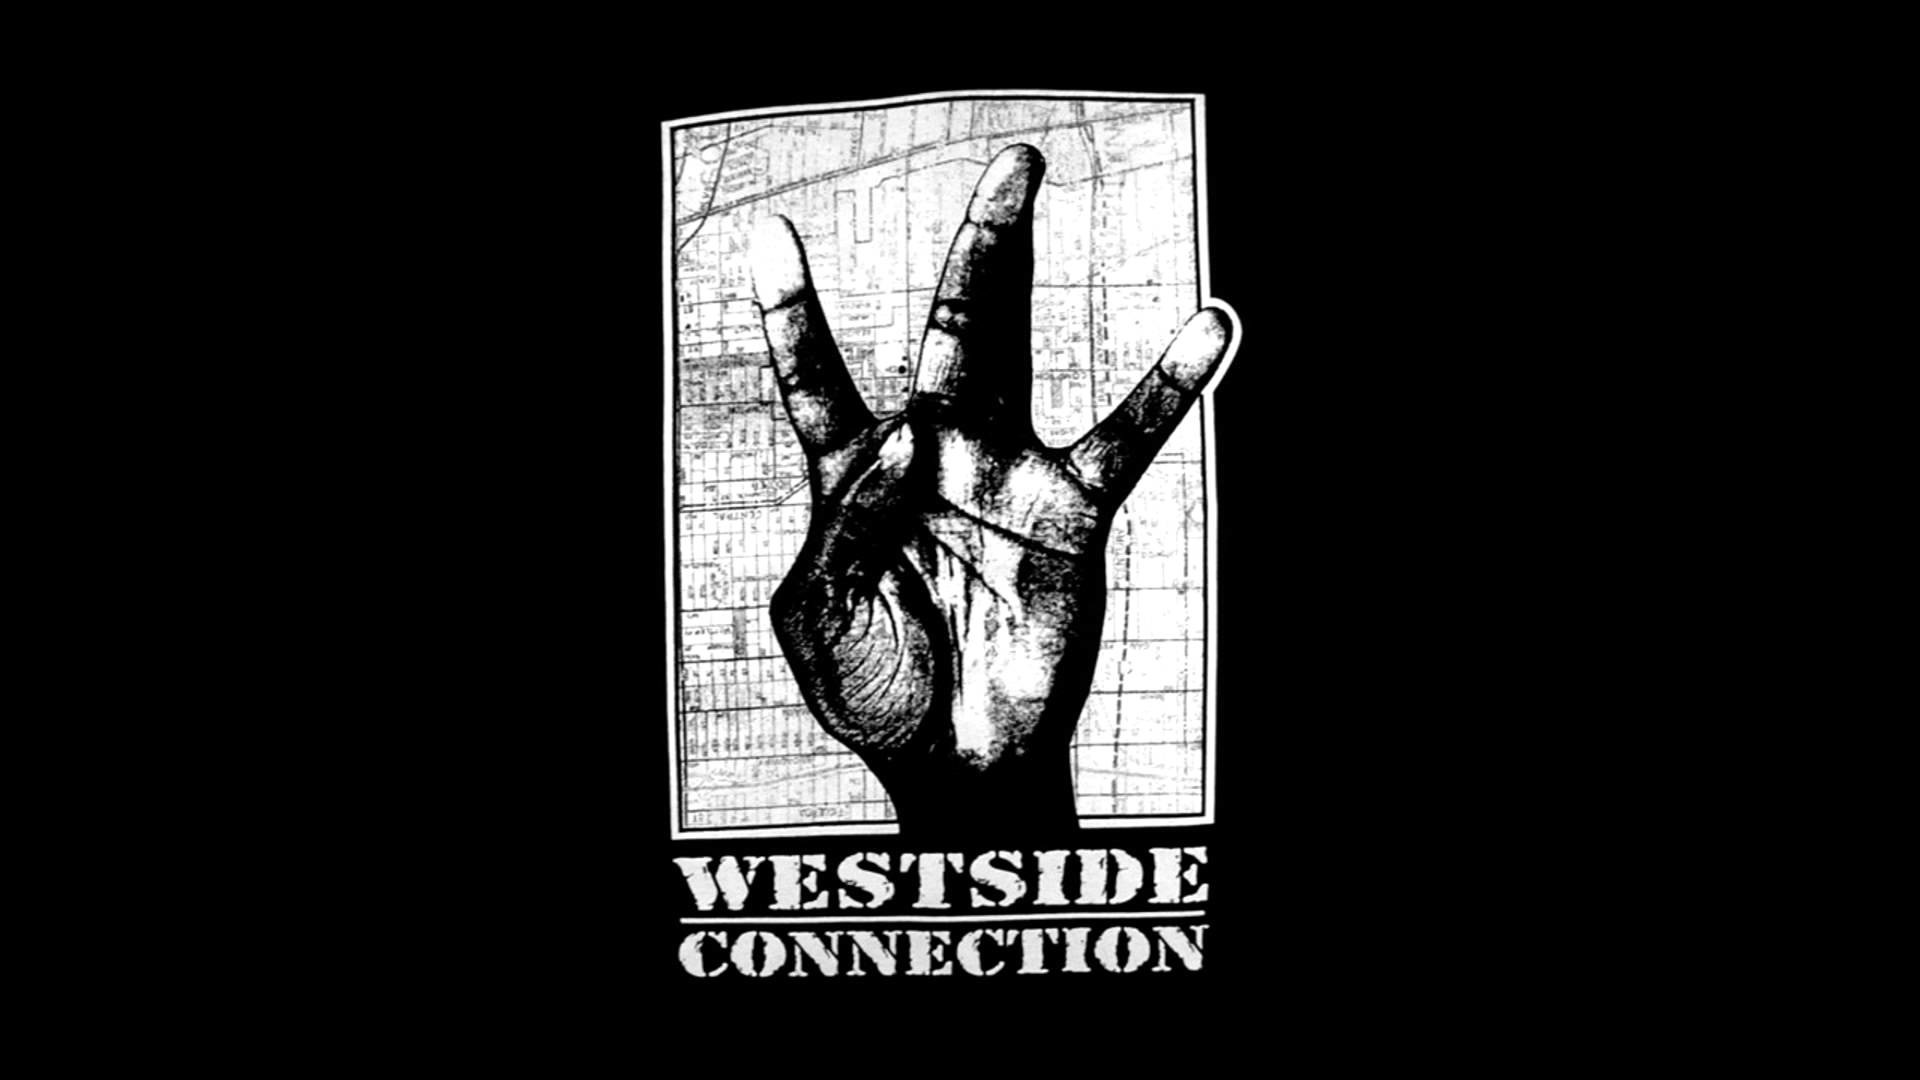 1920x1080 West Coast Rap Hip Hop Instrumental Dr Dre 2pac Snoop Dogg Type Prod By Vicente HD